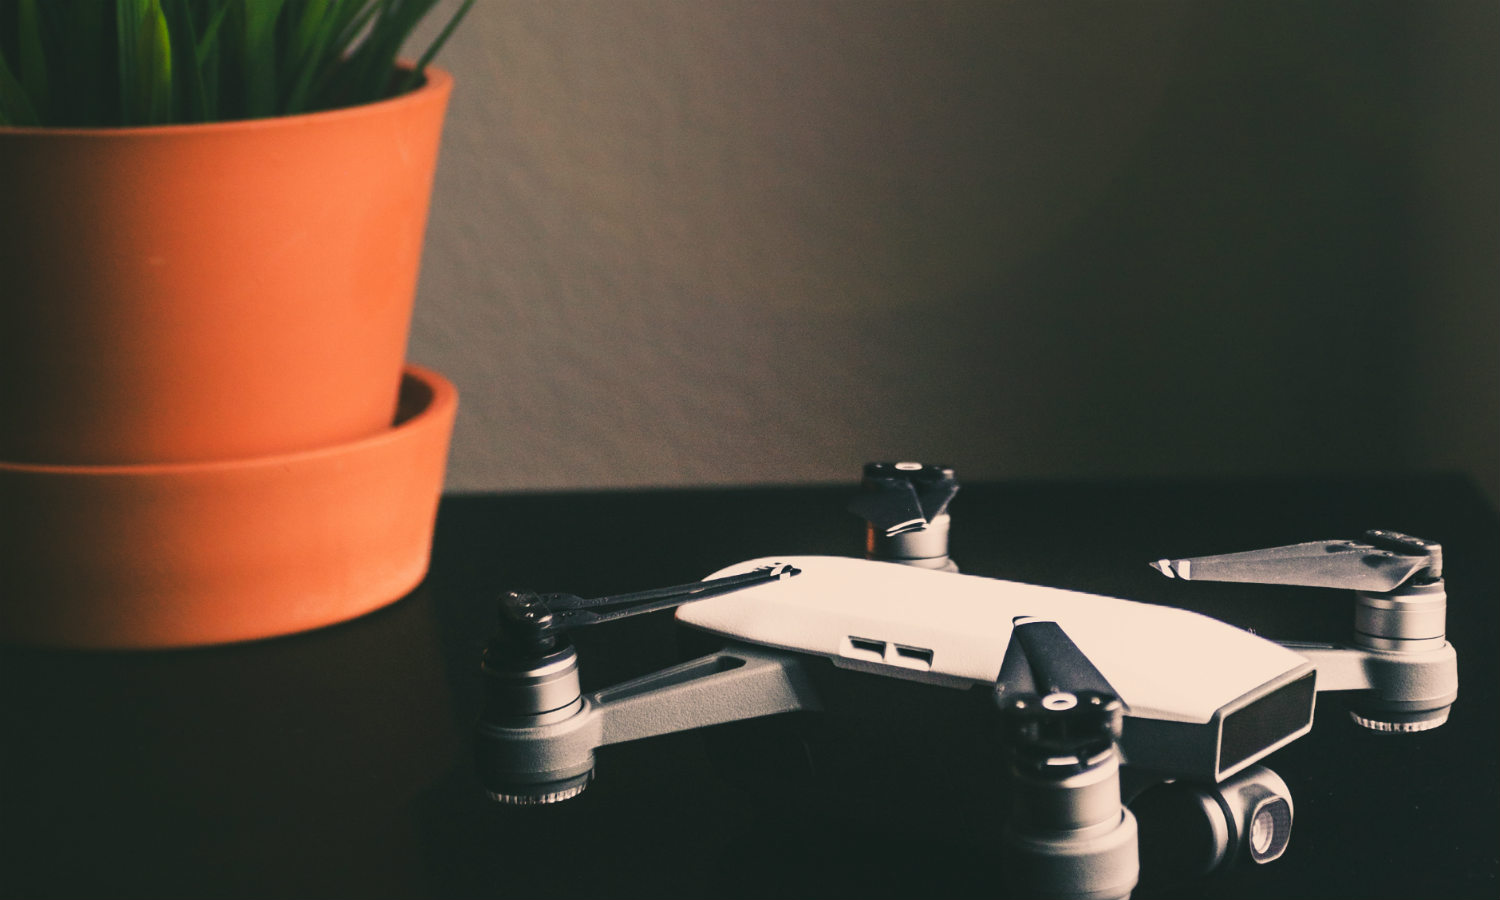 A drone inside on the table